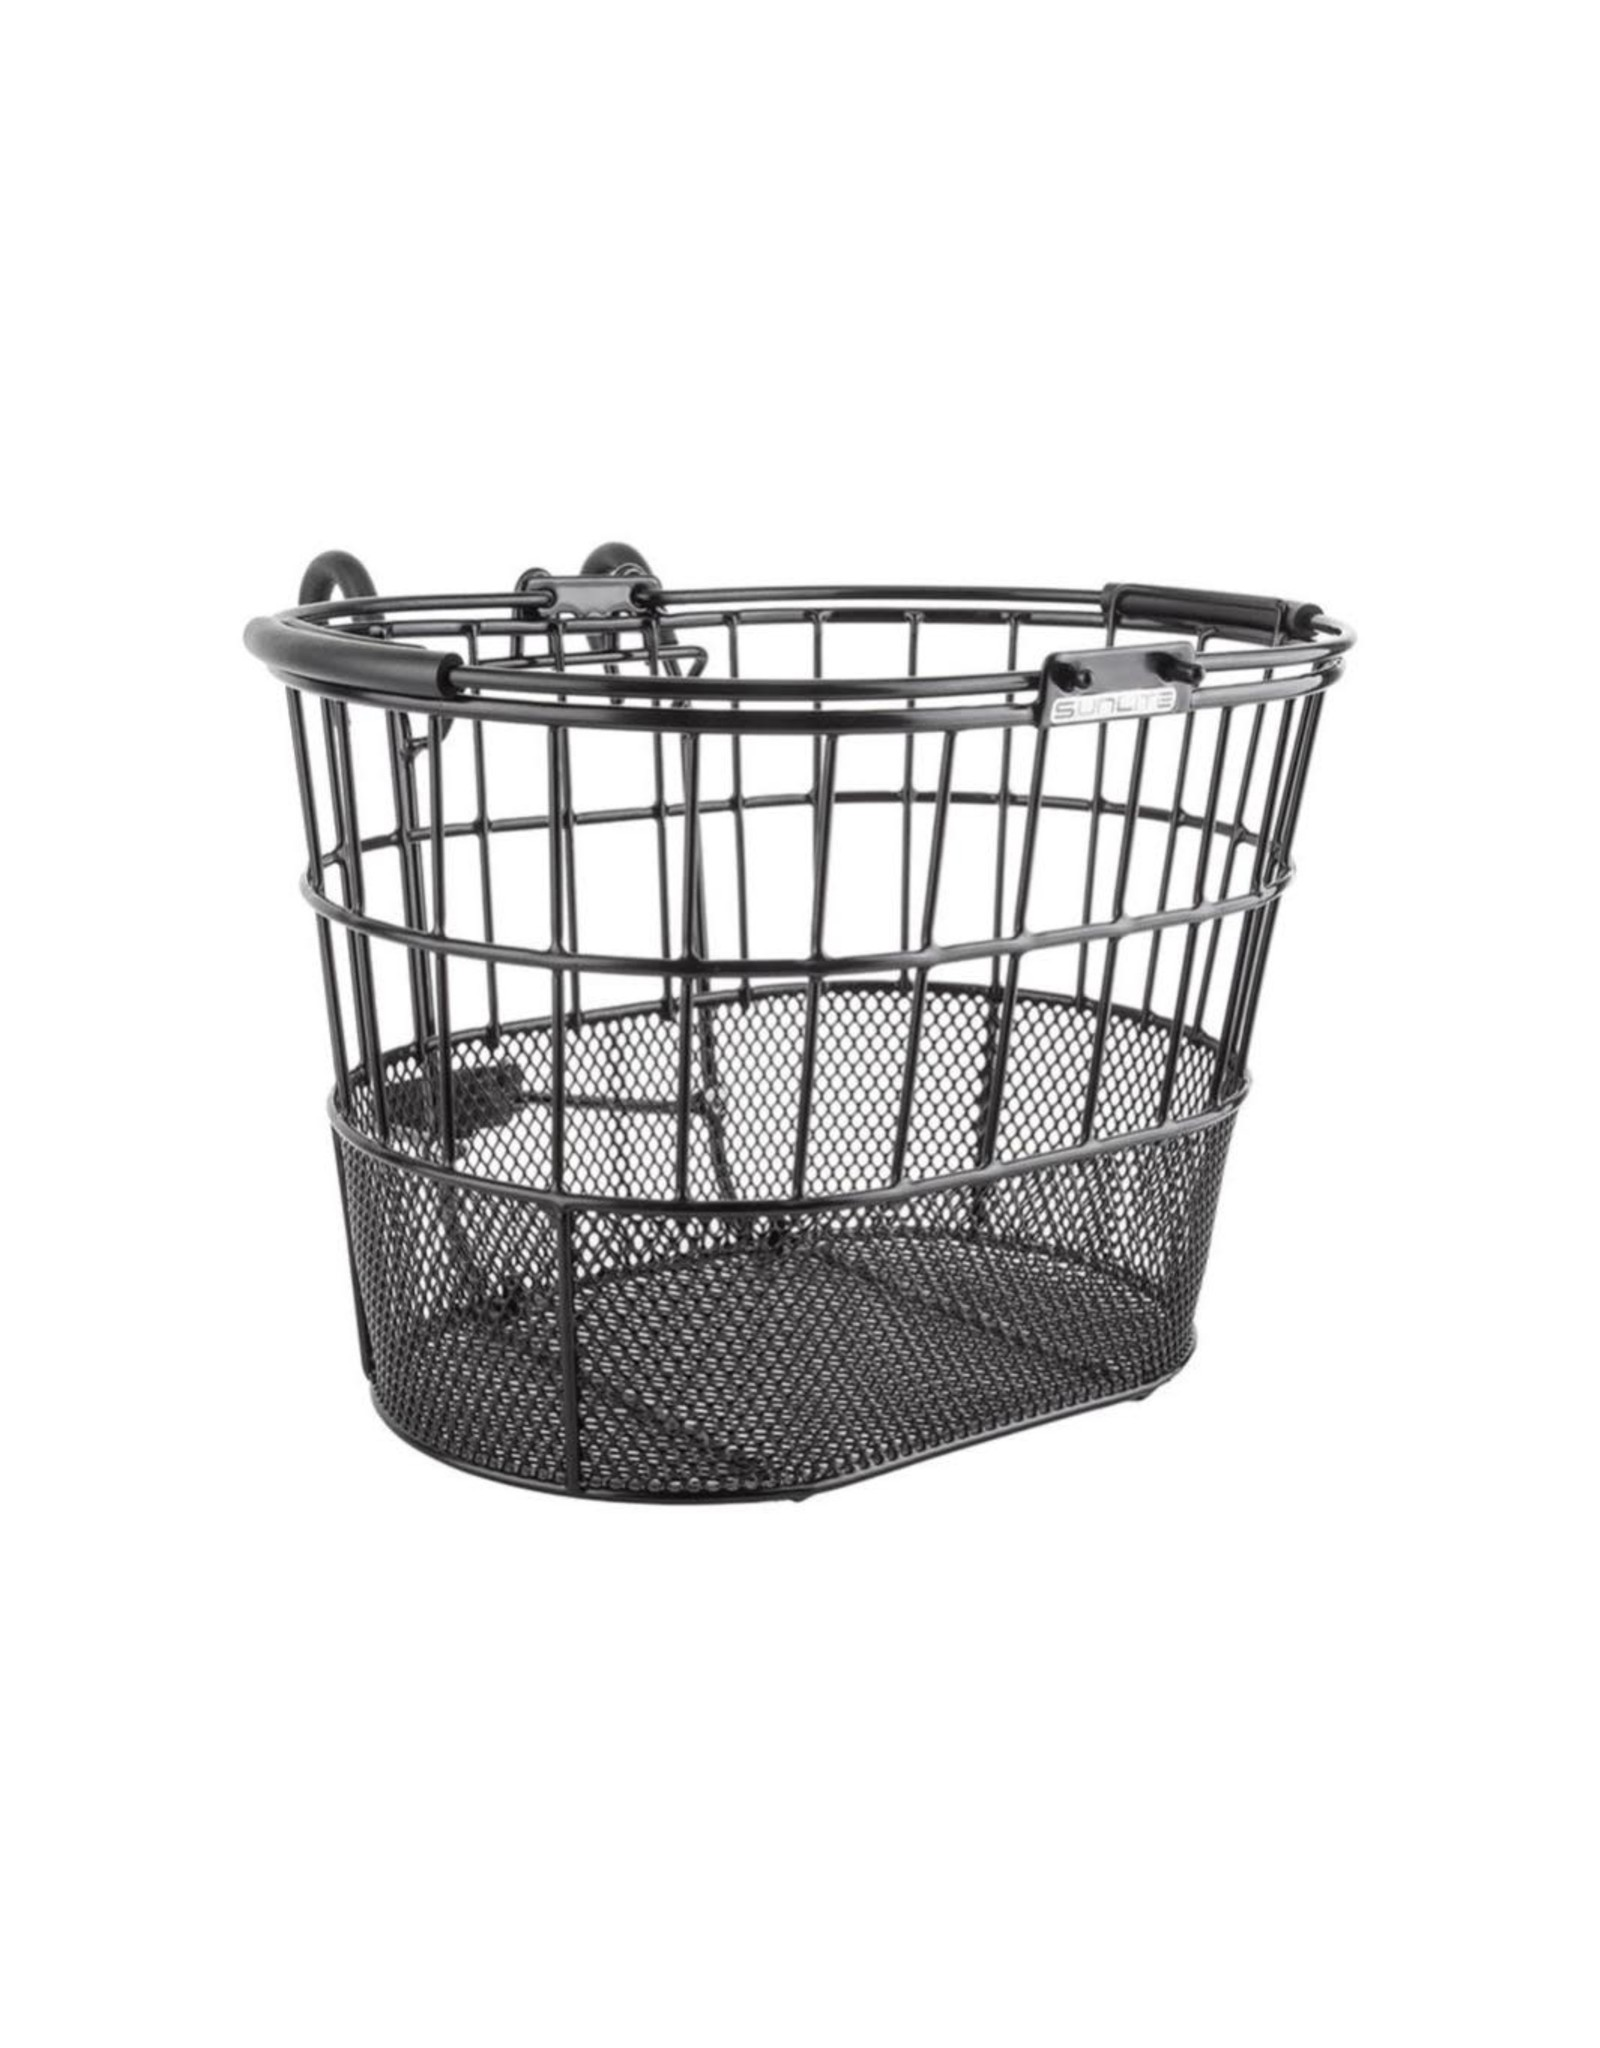 Sunlite  Oval Mesh Bottom Lift-Off Basket